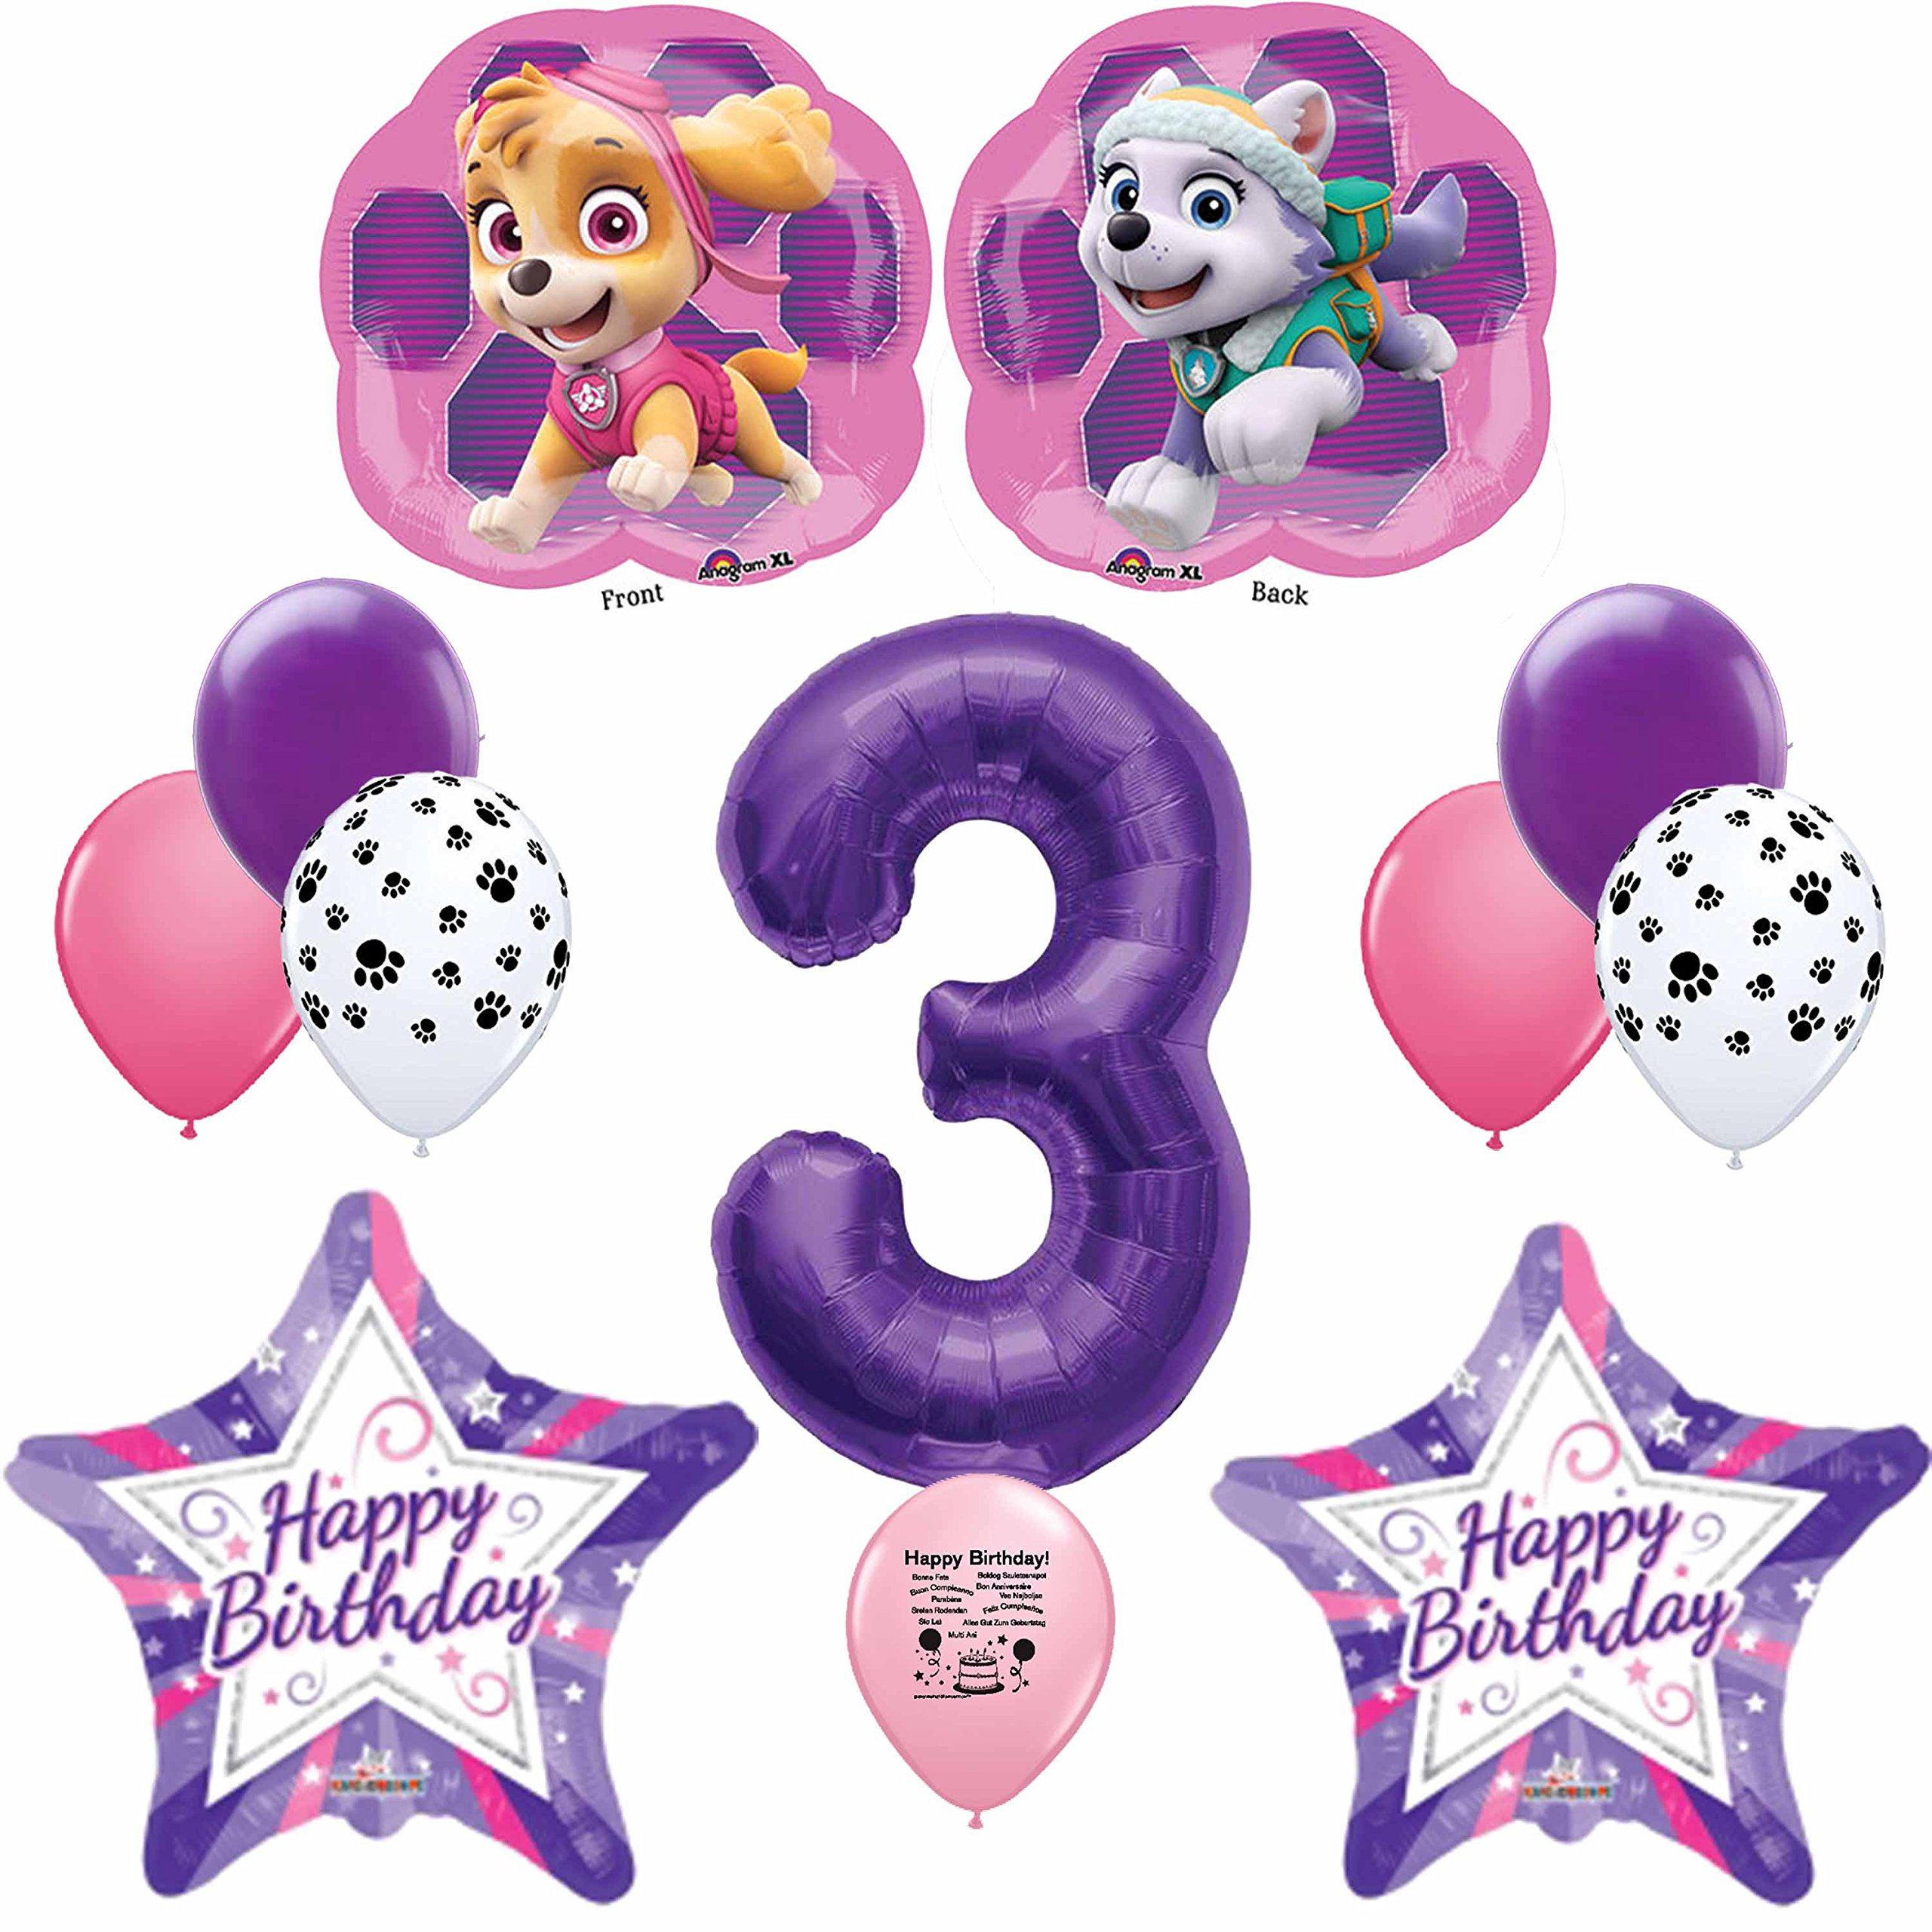 Skye Pink Paw Patrol Happy 3rd Birthday Balloon Decoration Kit